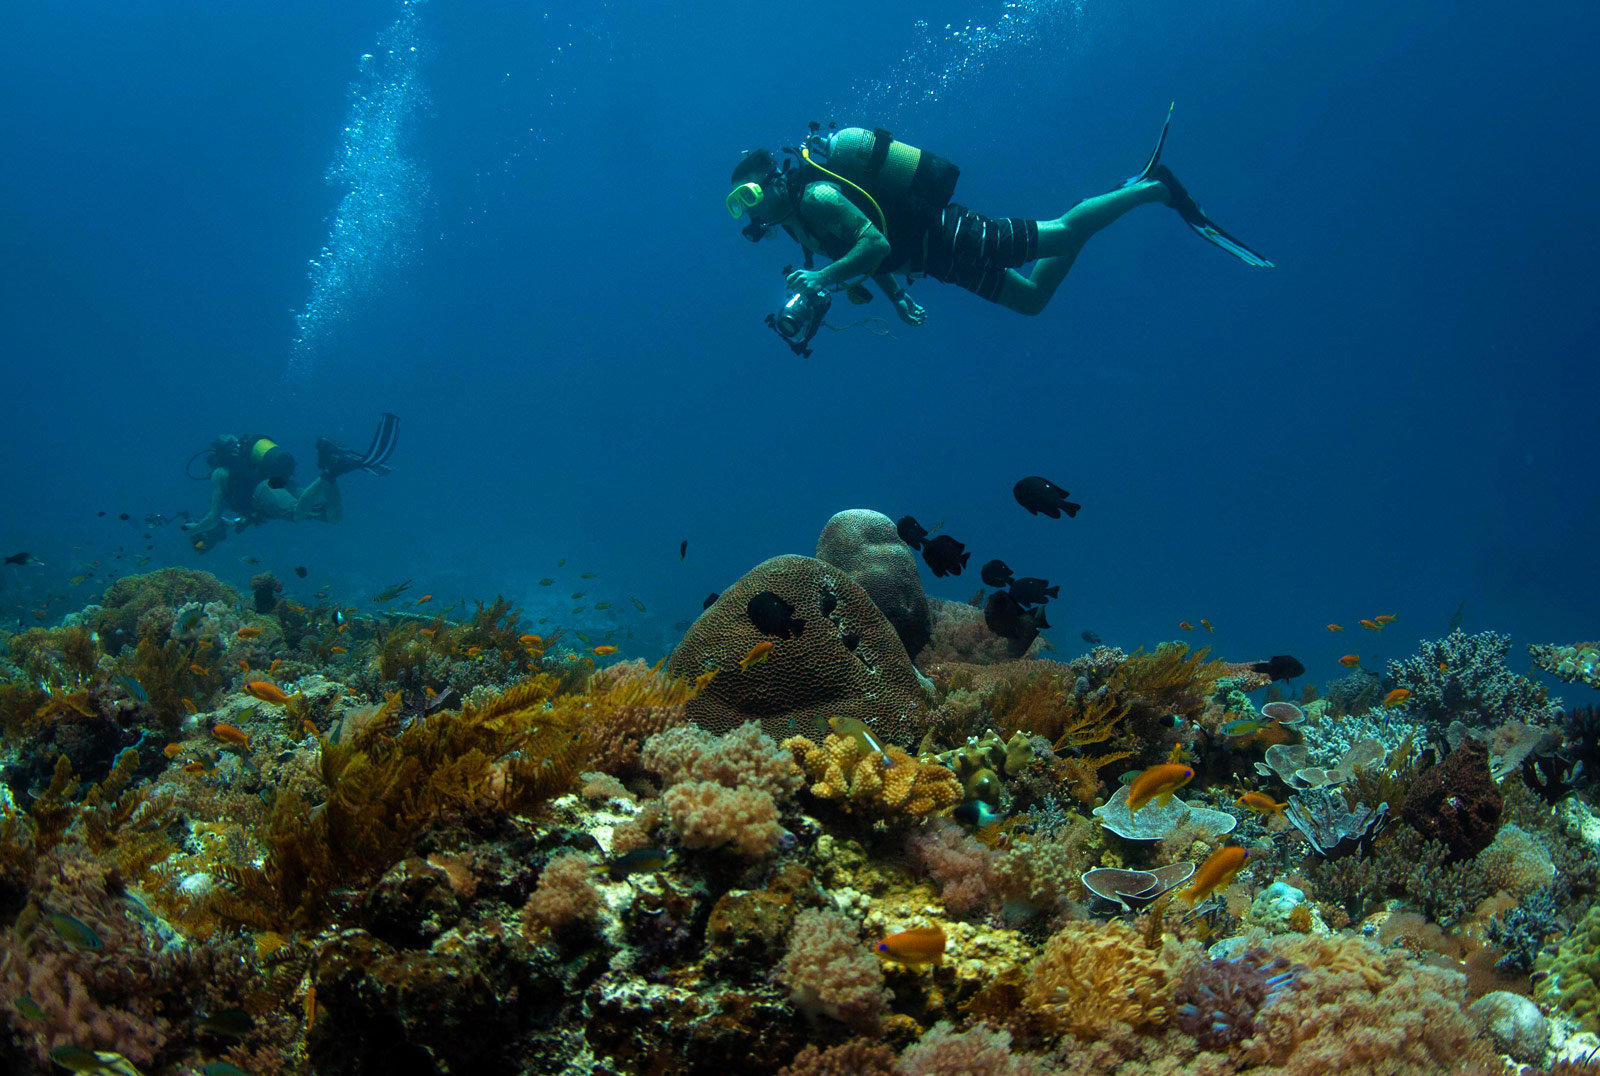 coral-reef-diving-east-africa-IMG_0258-22